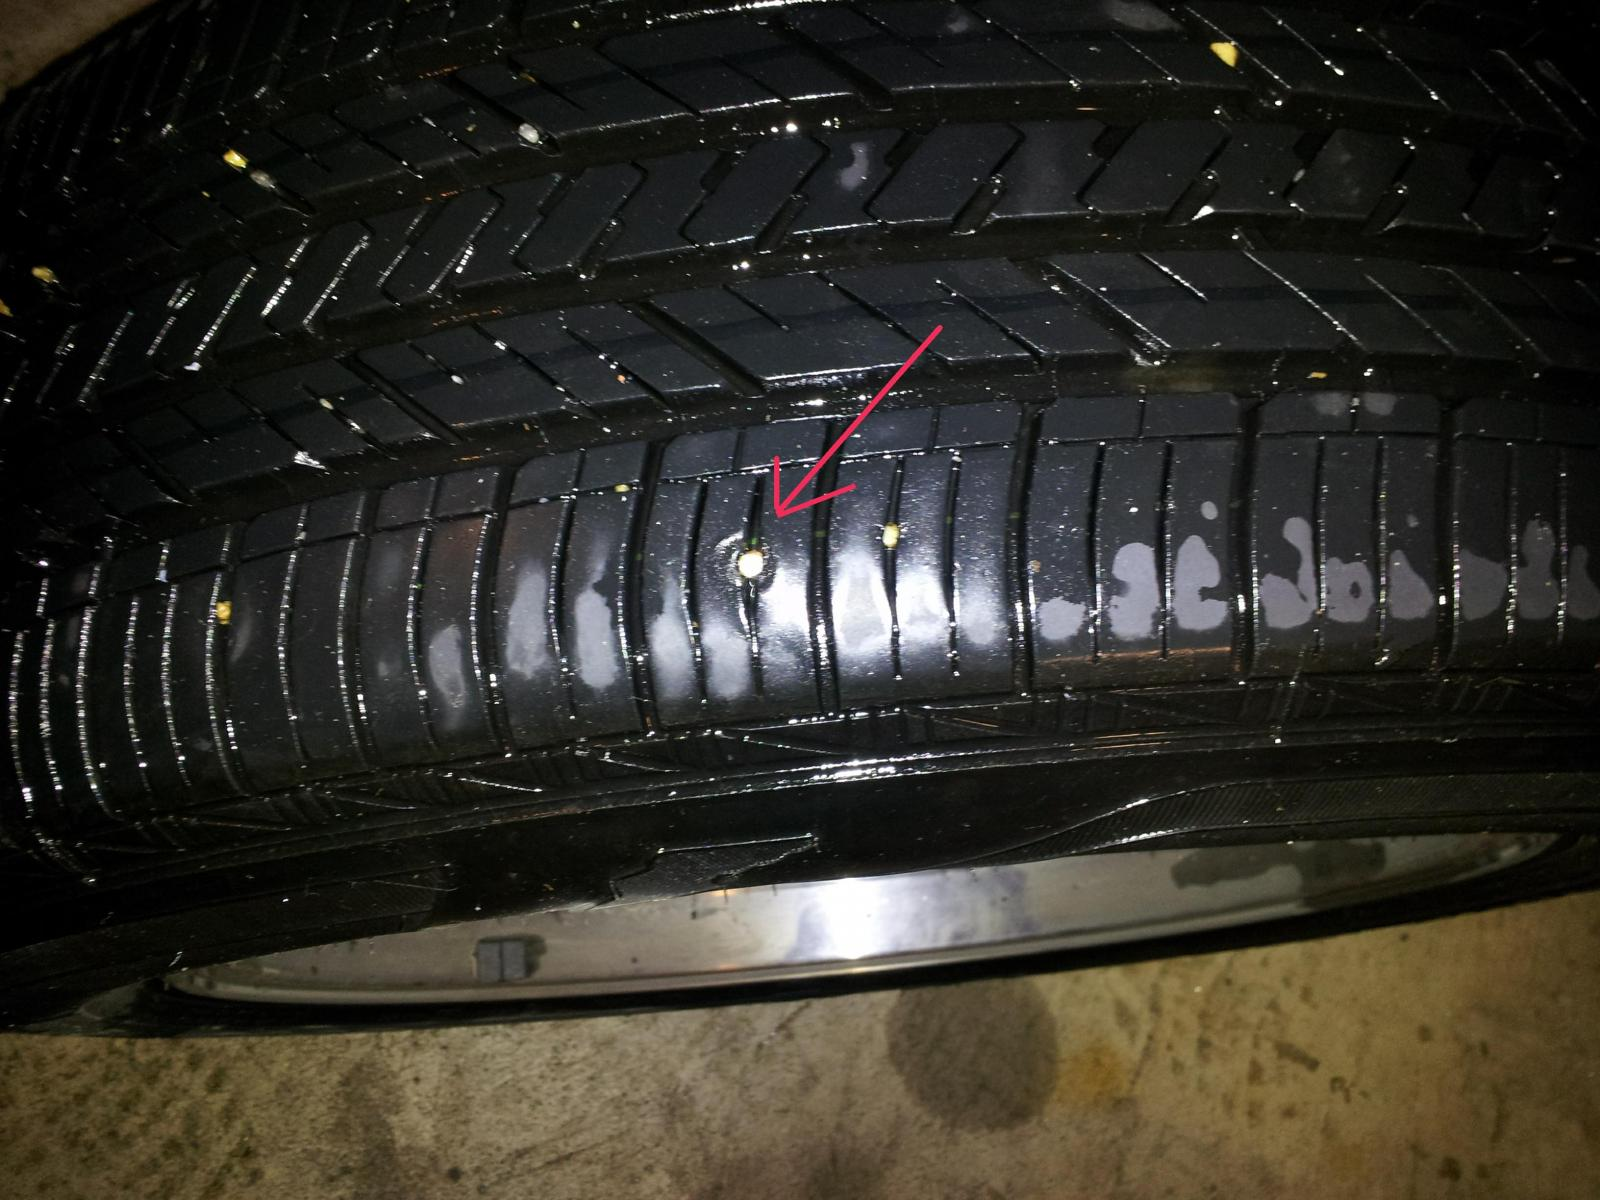 Nail too close to sidewall?